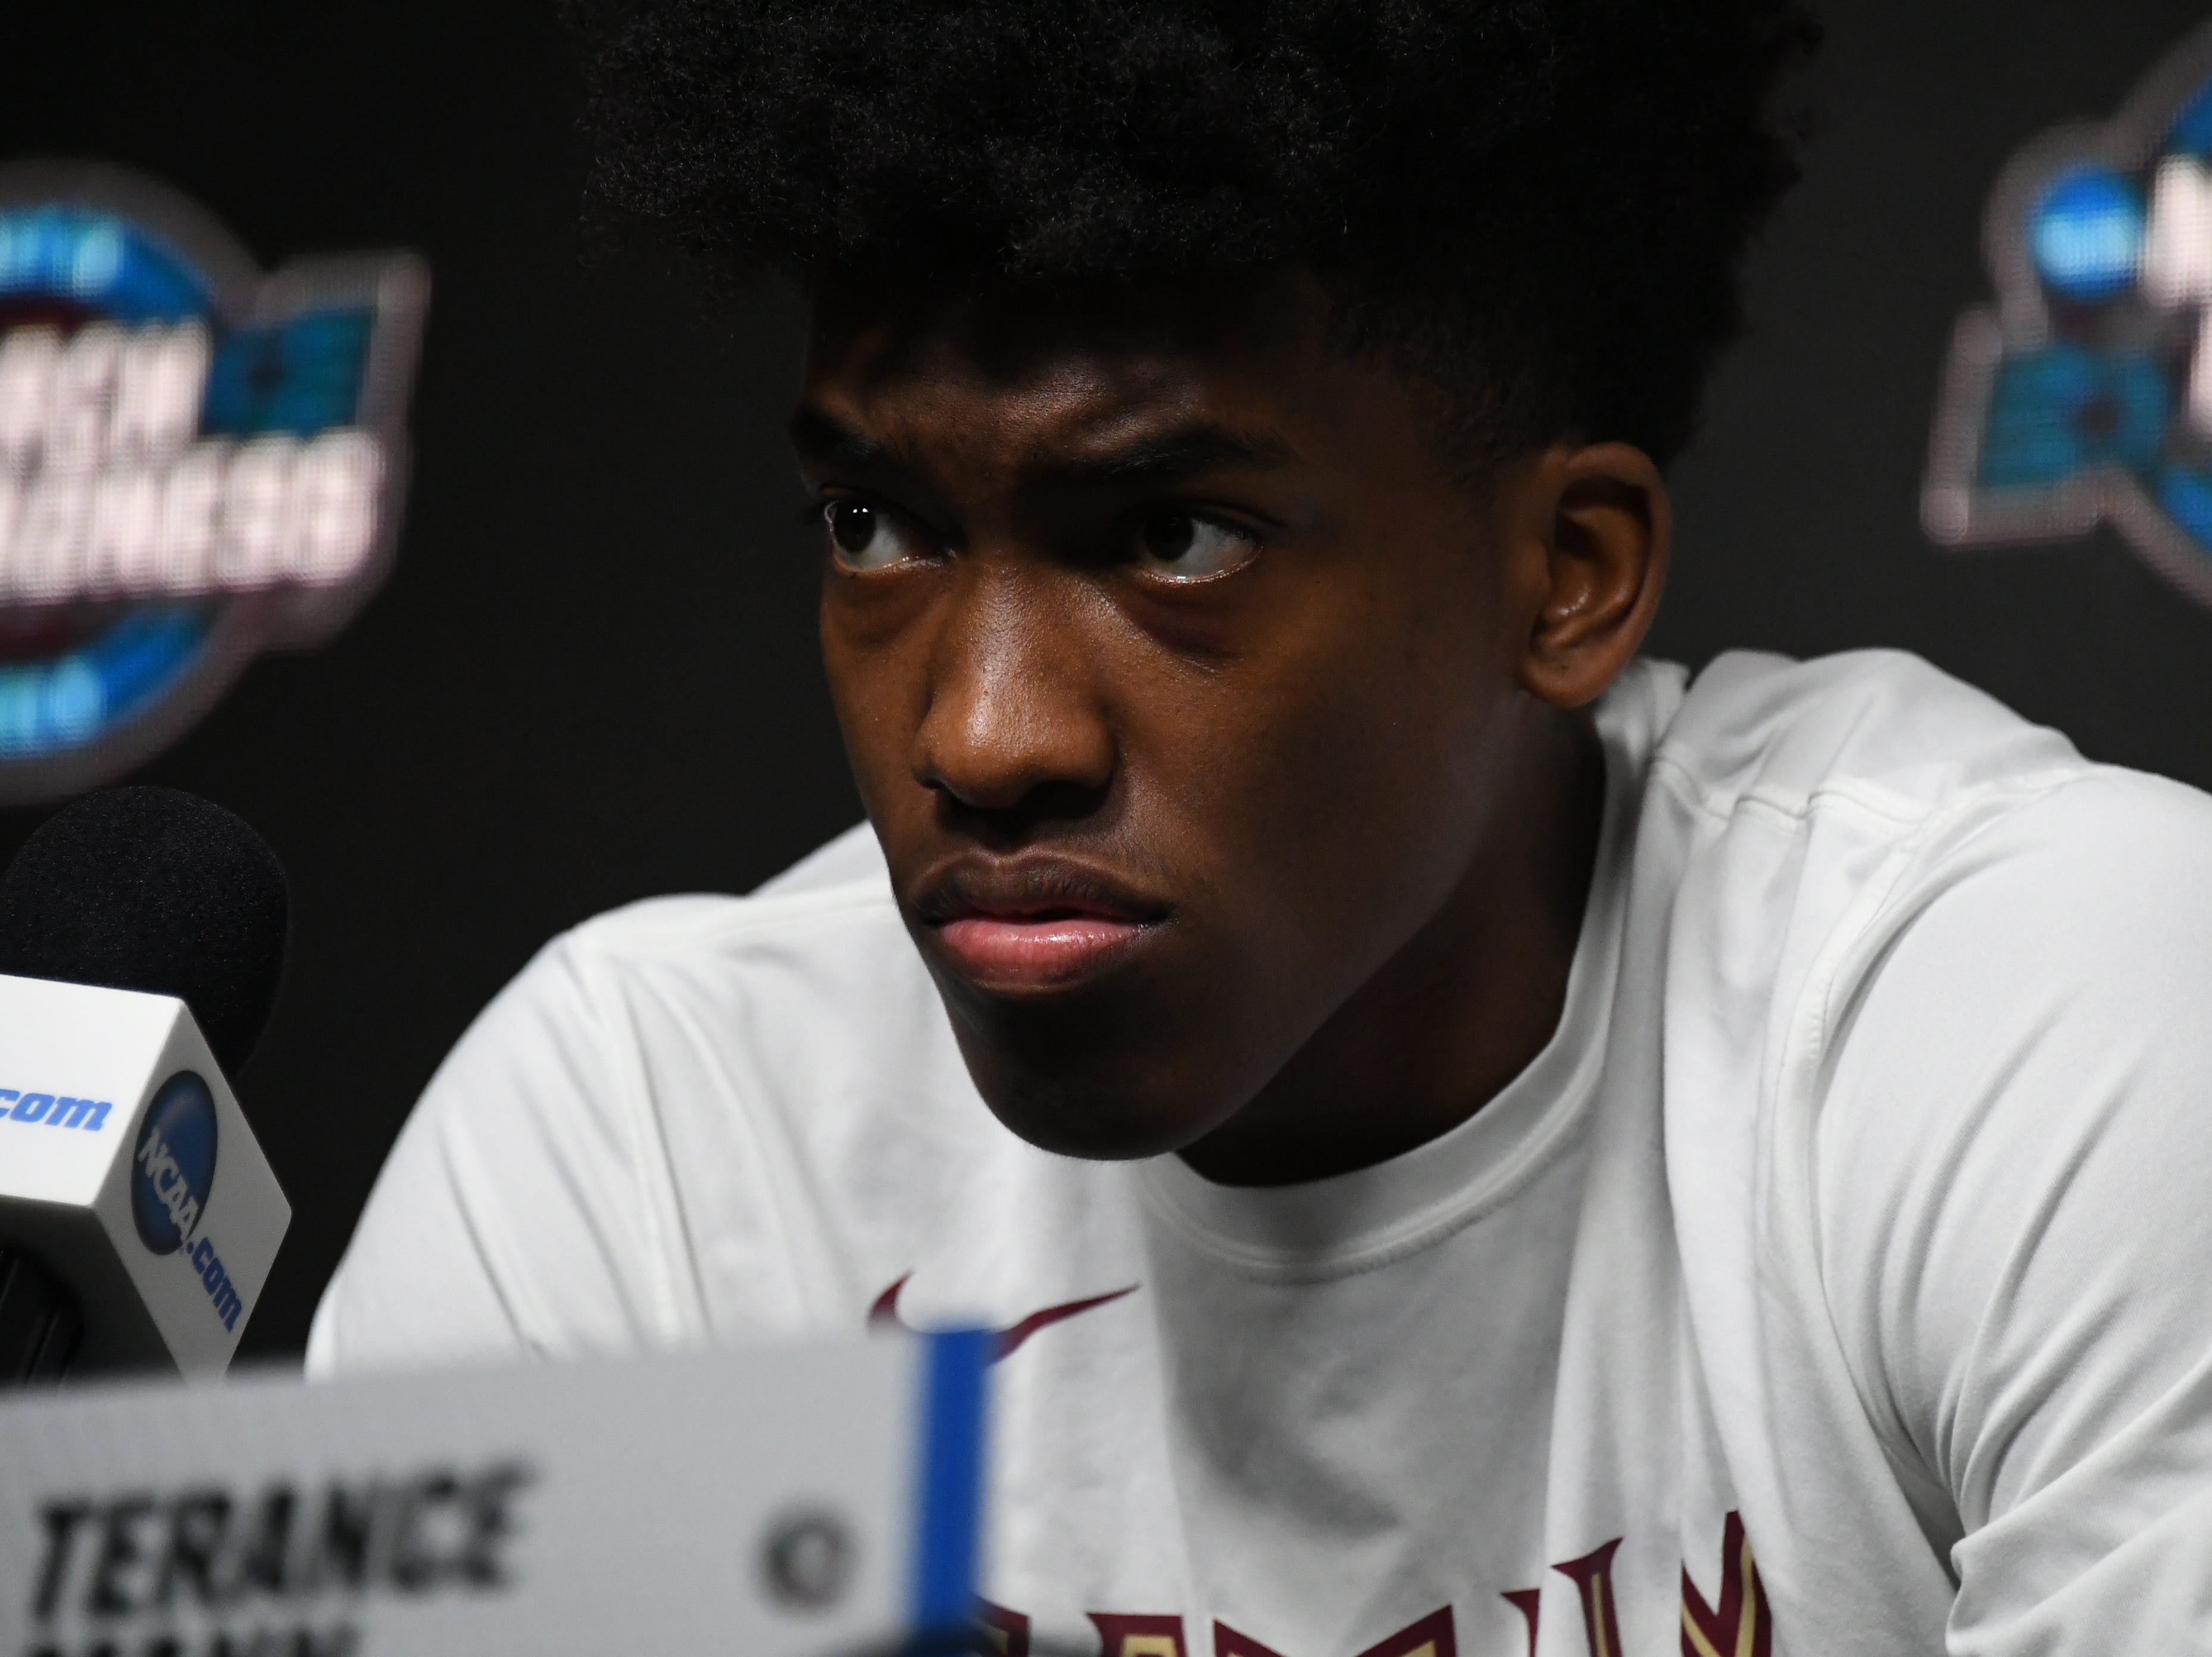 March 27, 2019; Anaheim, CA, USA; Florida State Seminoles guard Terance Mann (14) speaks with media during practice for the west regional of the 2019 NCAA Tournament at Honda Center. Mandatory Credit: Richard Mackson-USA TODAY Sports